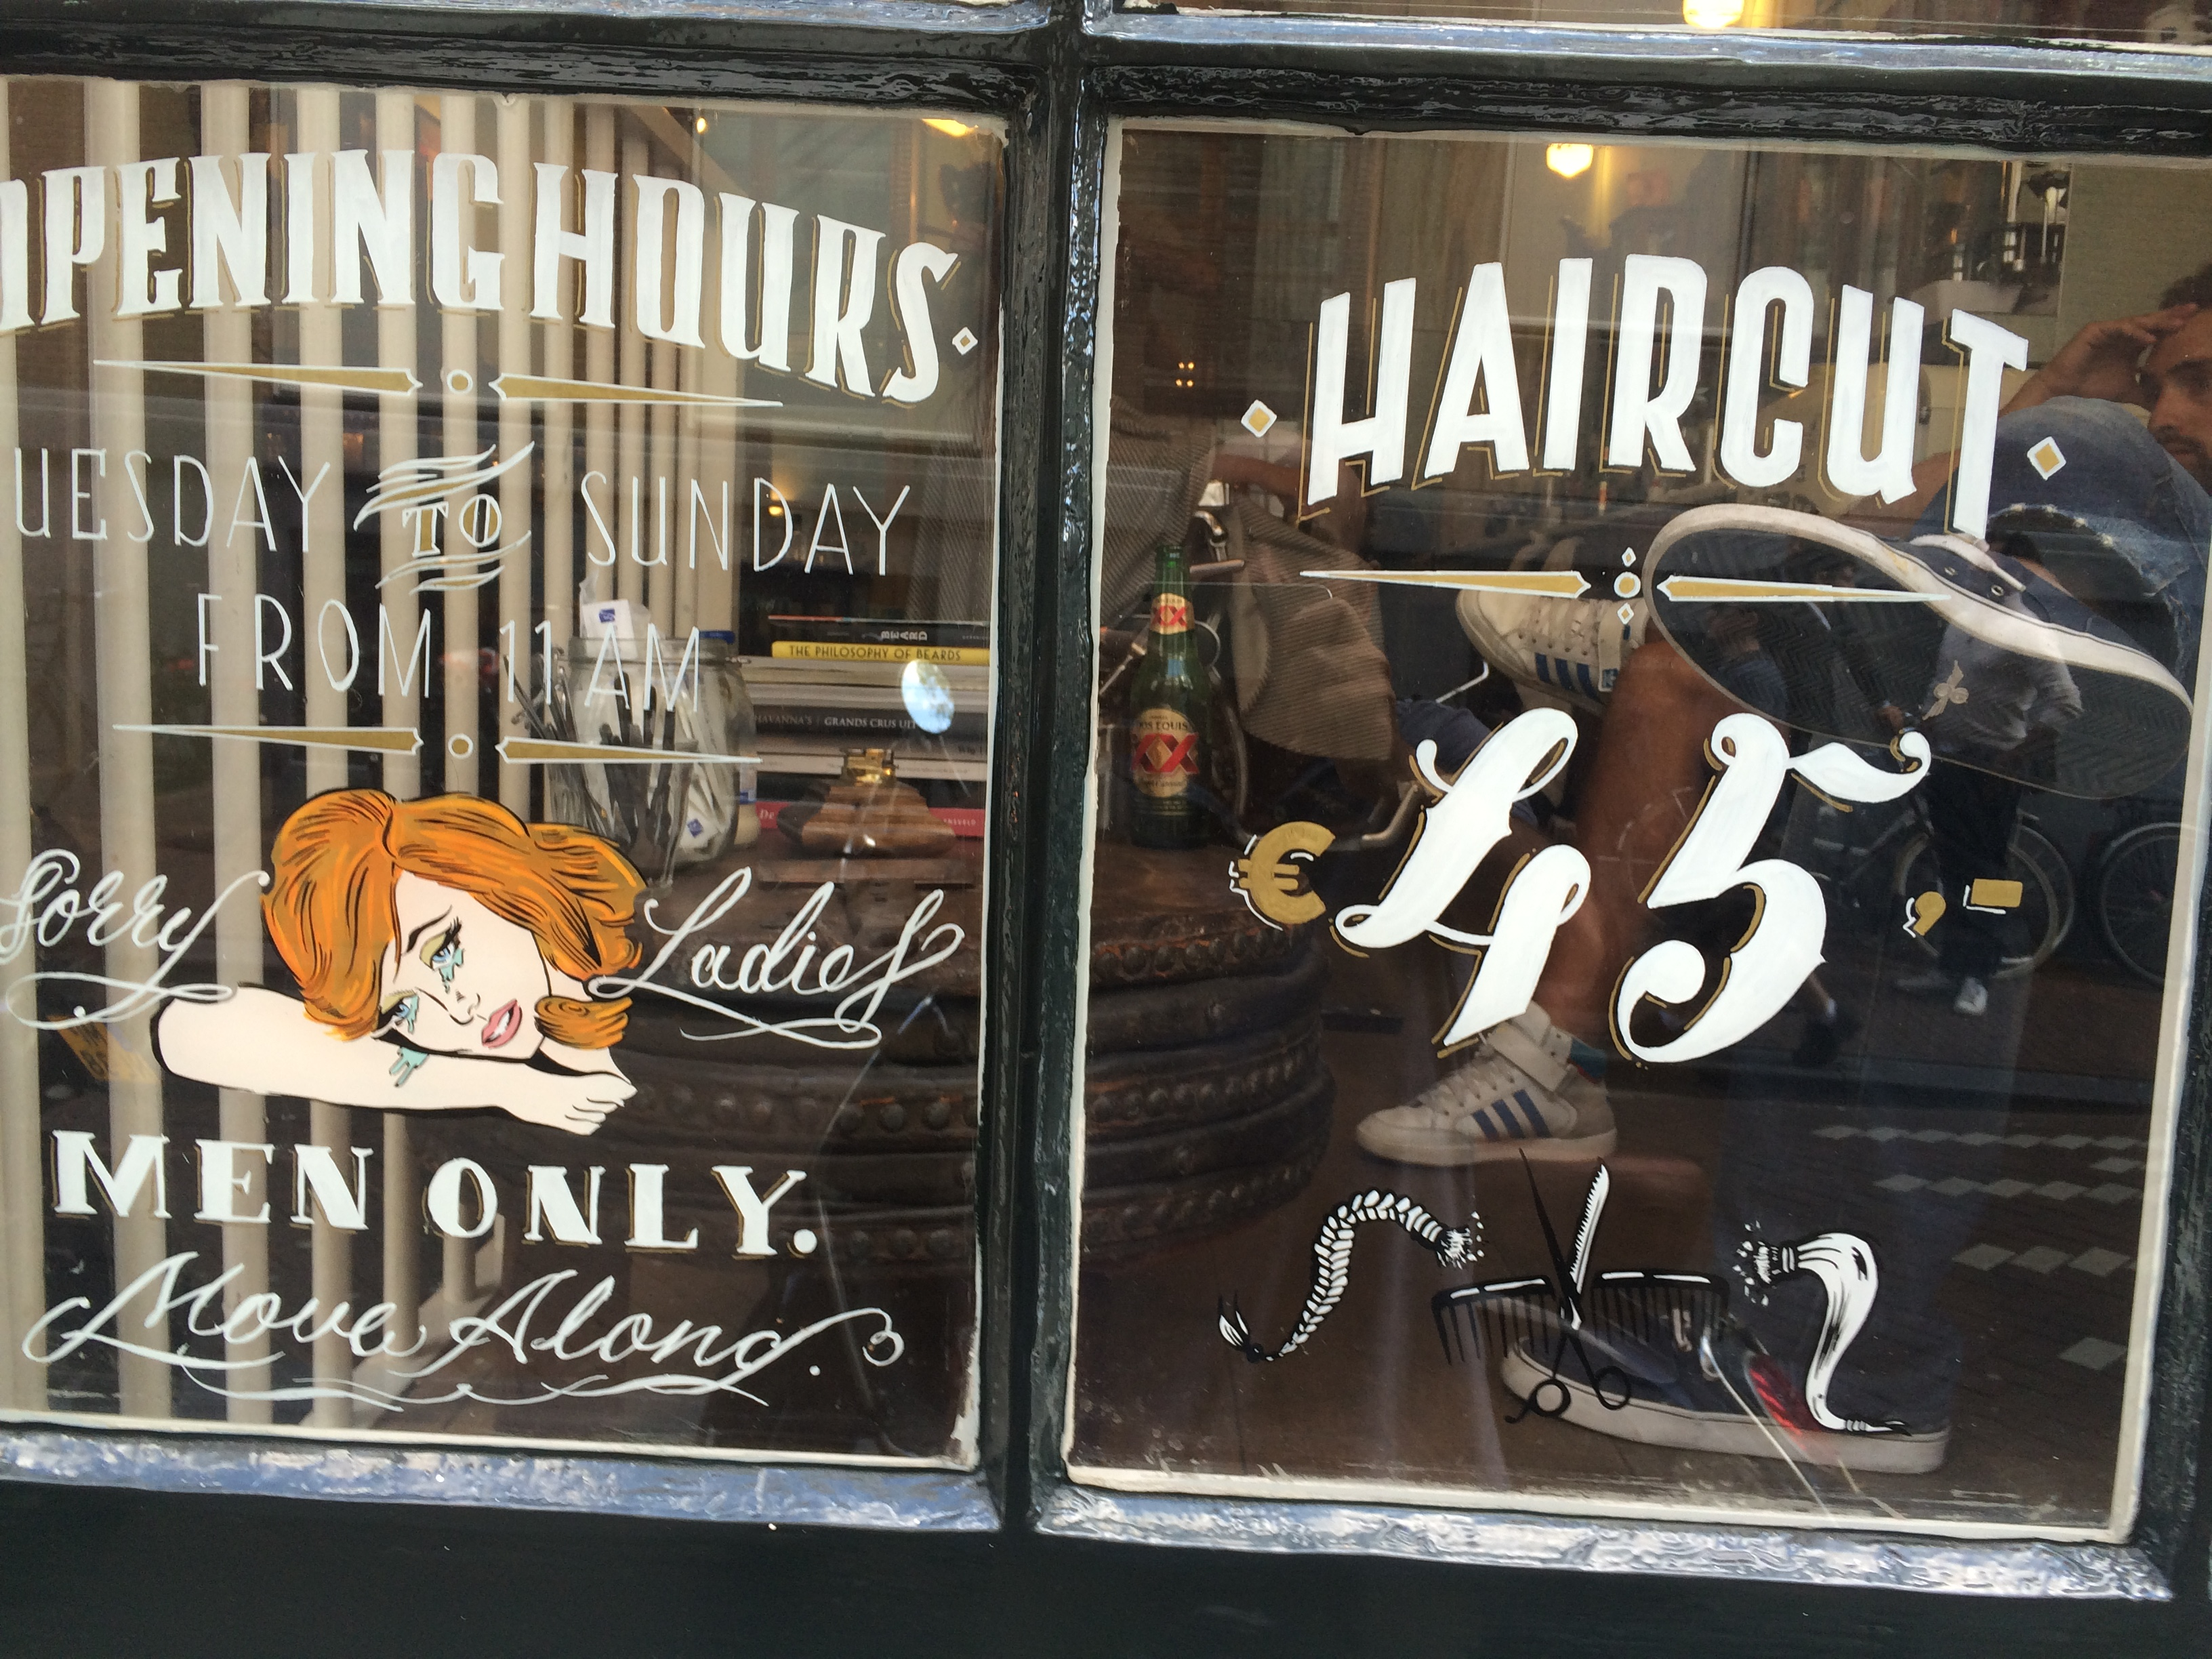 Expensive haircut. 45 euros in amsterdam.